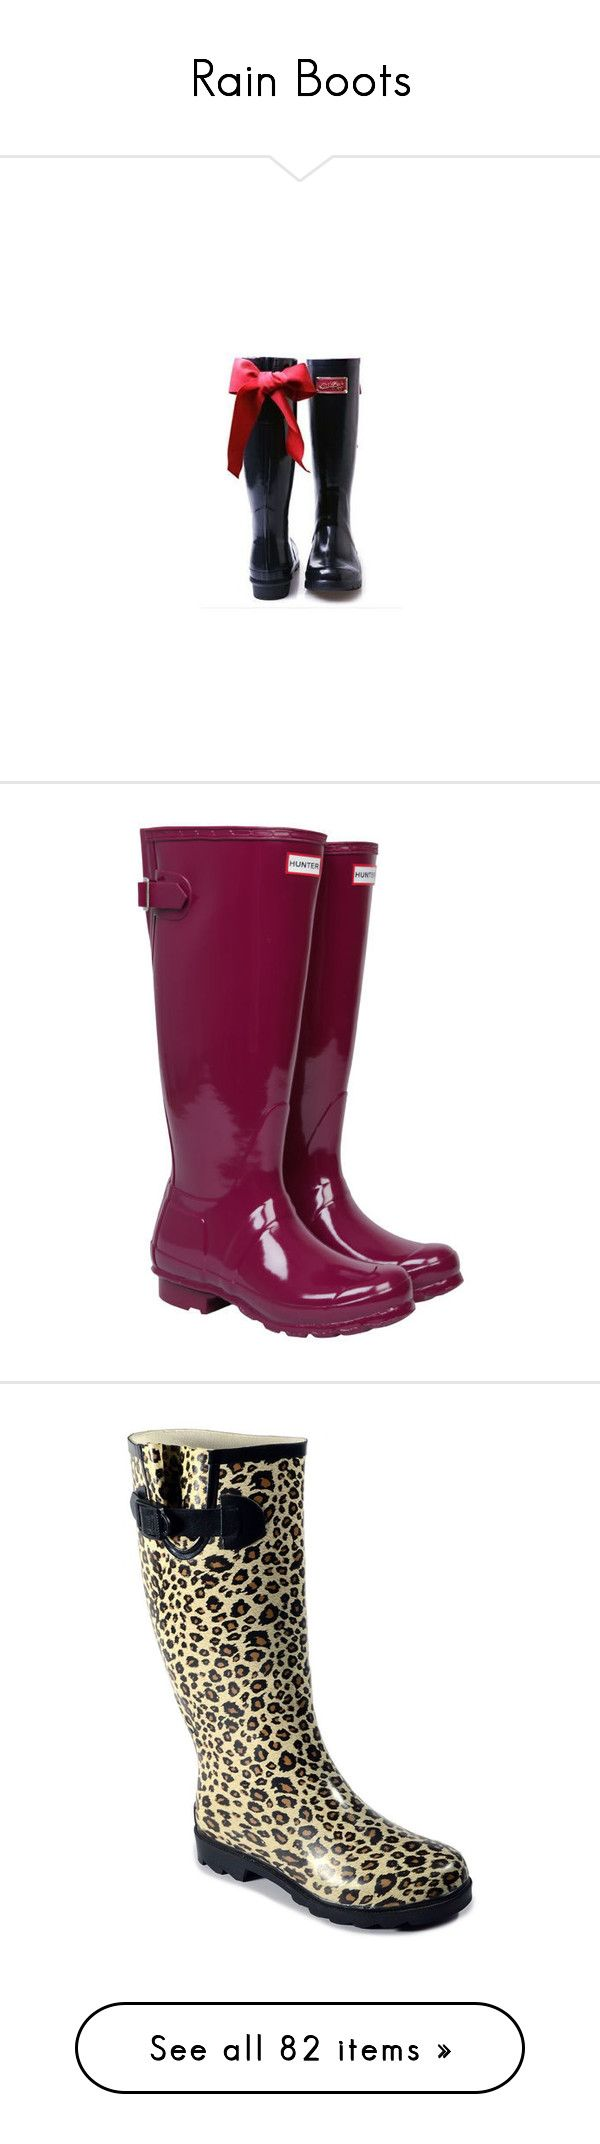 """""""Rain Boots"""" by kginger ❤ liked on Polyvore featuring rain boots, shoes, boots, gumboots, purple, wellington boots, shining boots, adjustable shoes, purple shoes and purple boots"""